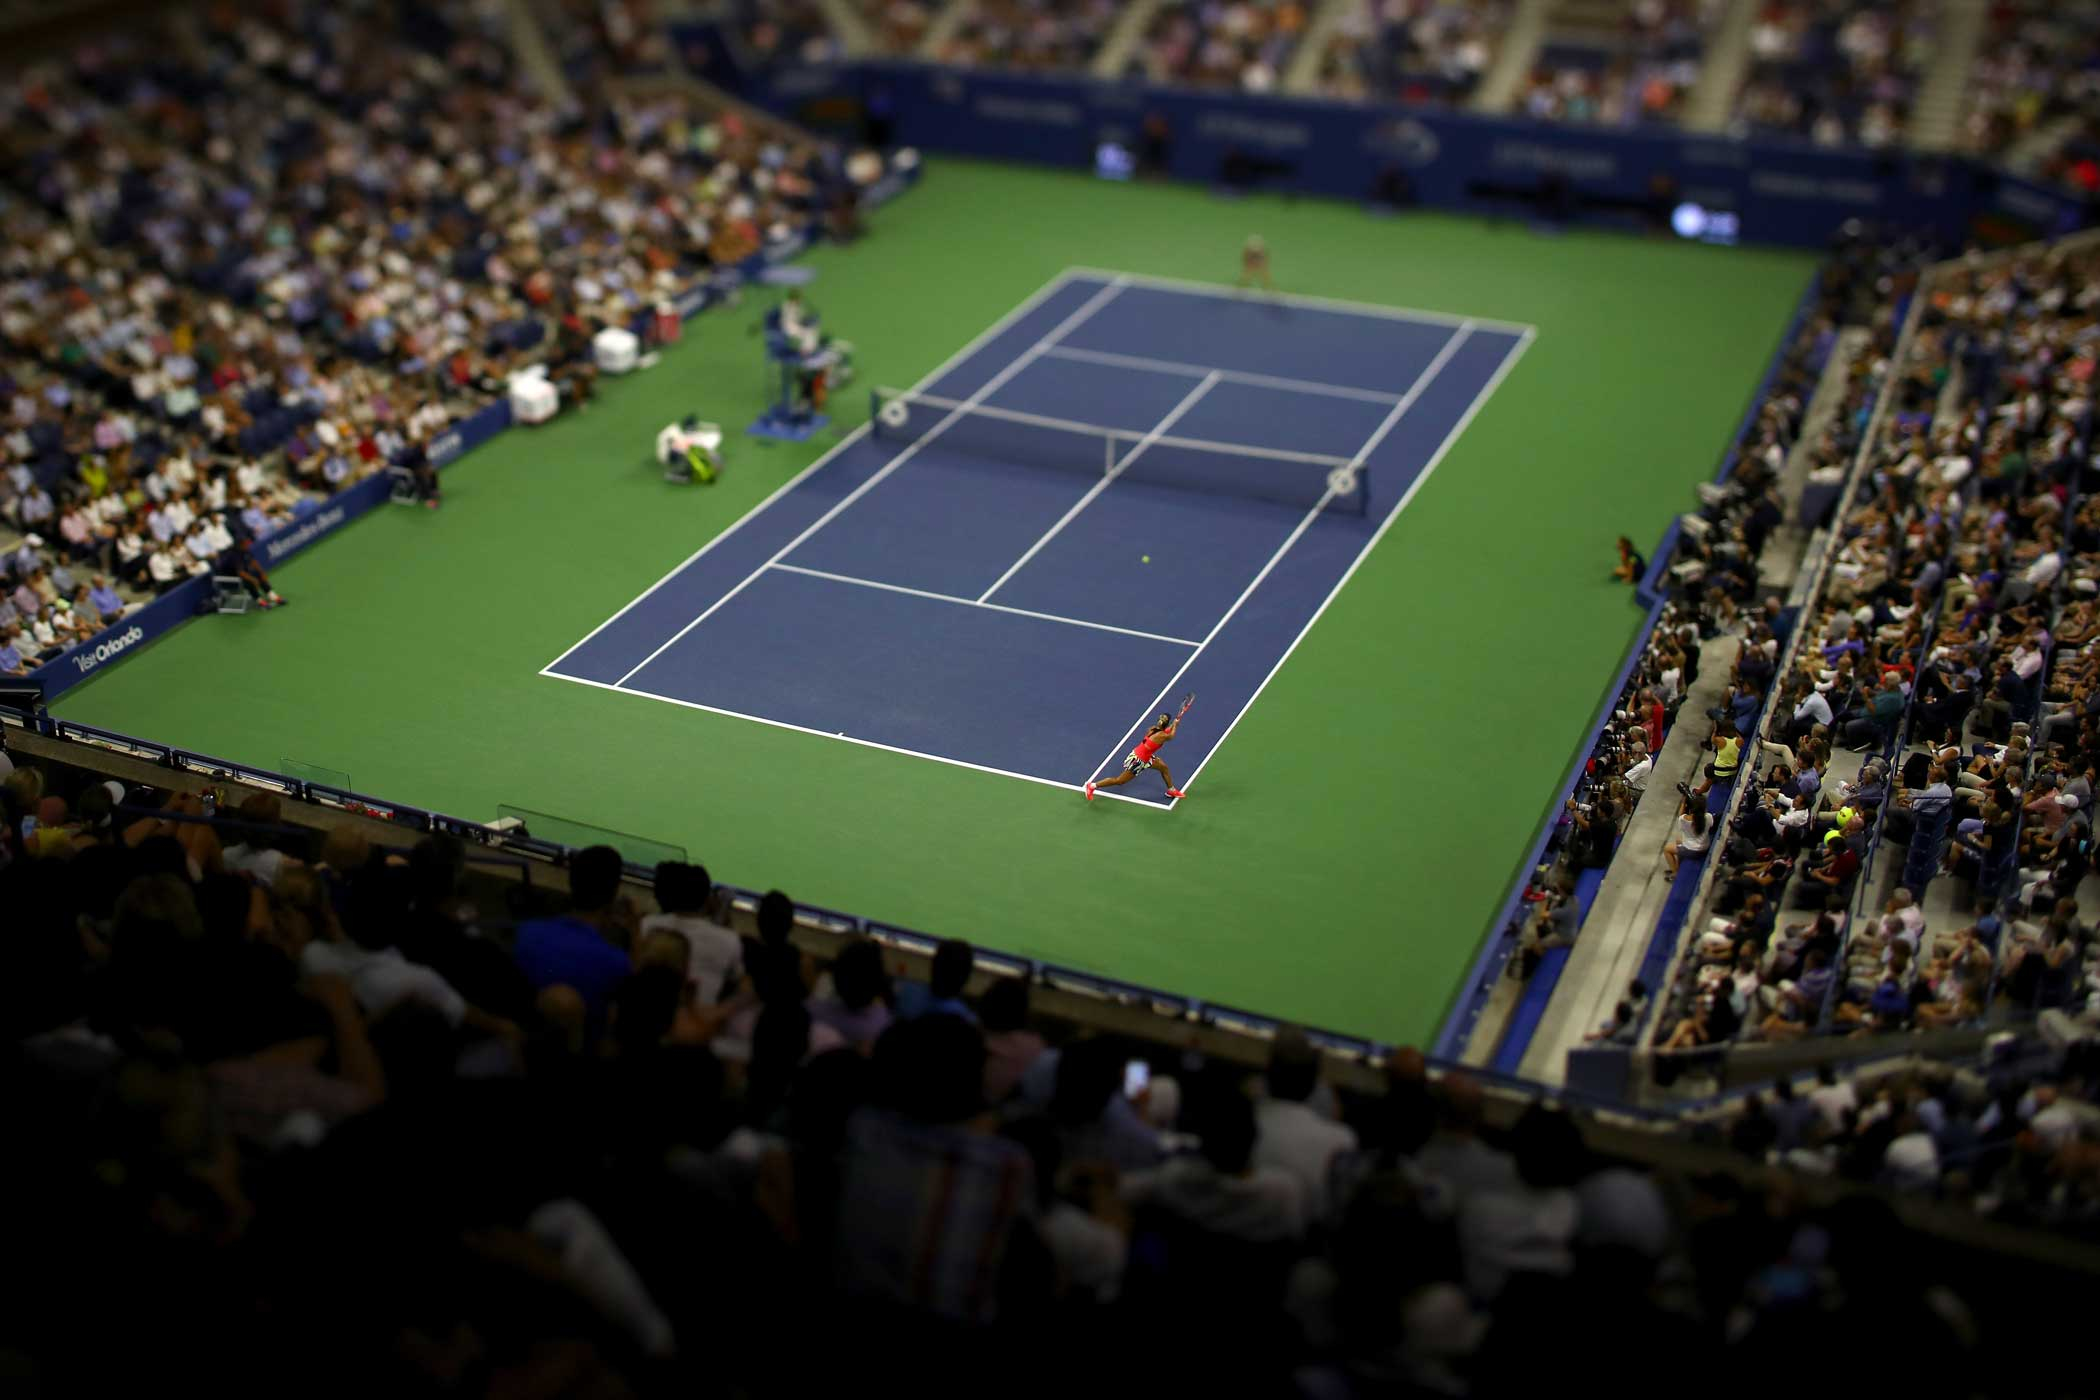 Angelique Kerber of Germany returns a shot to Caroline Wozniacki of Denmark during their Women's Singles Semifinal Match at the US Open.